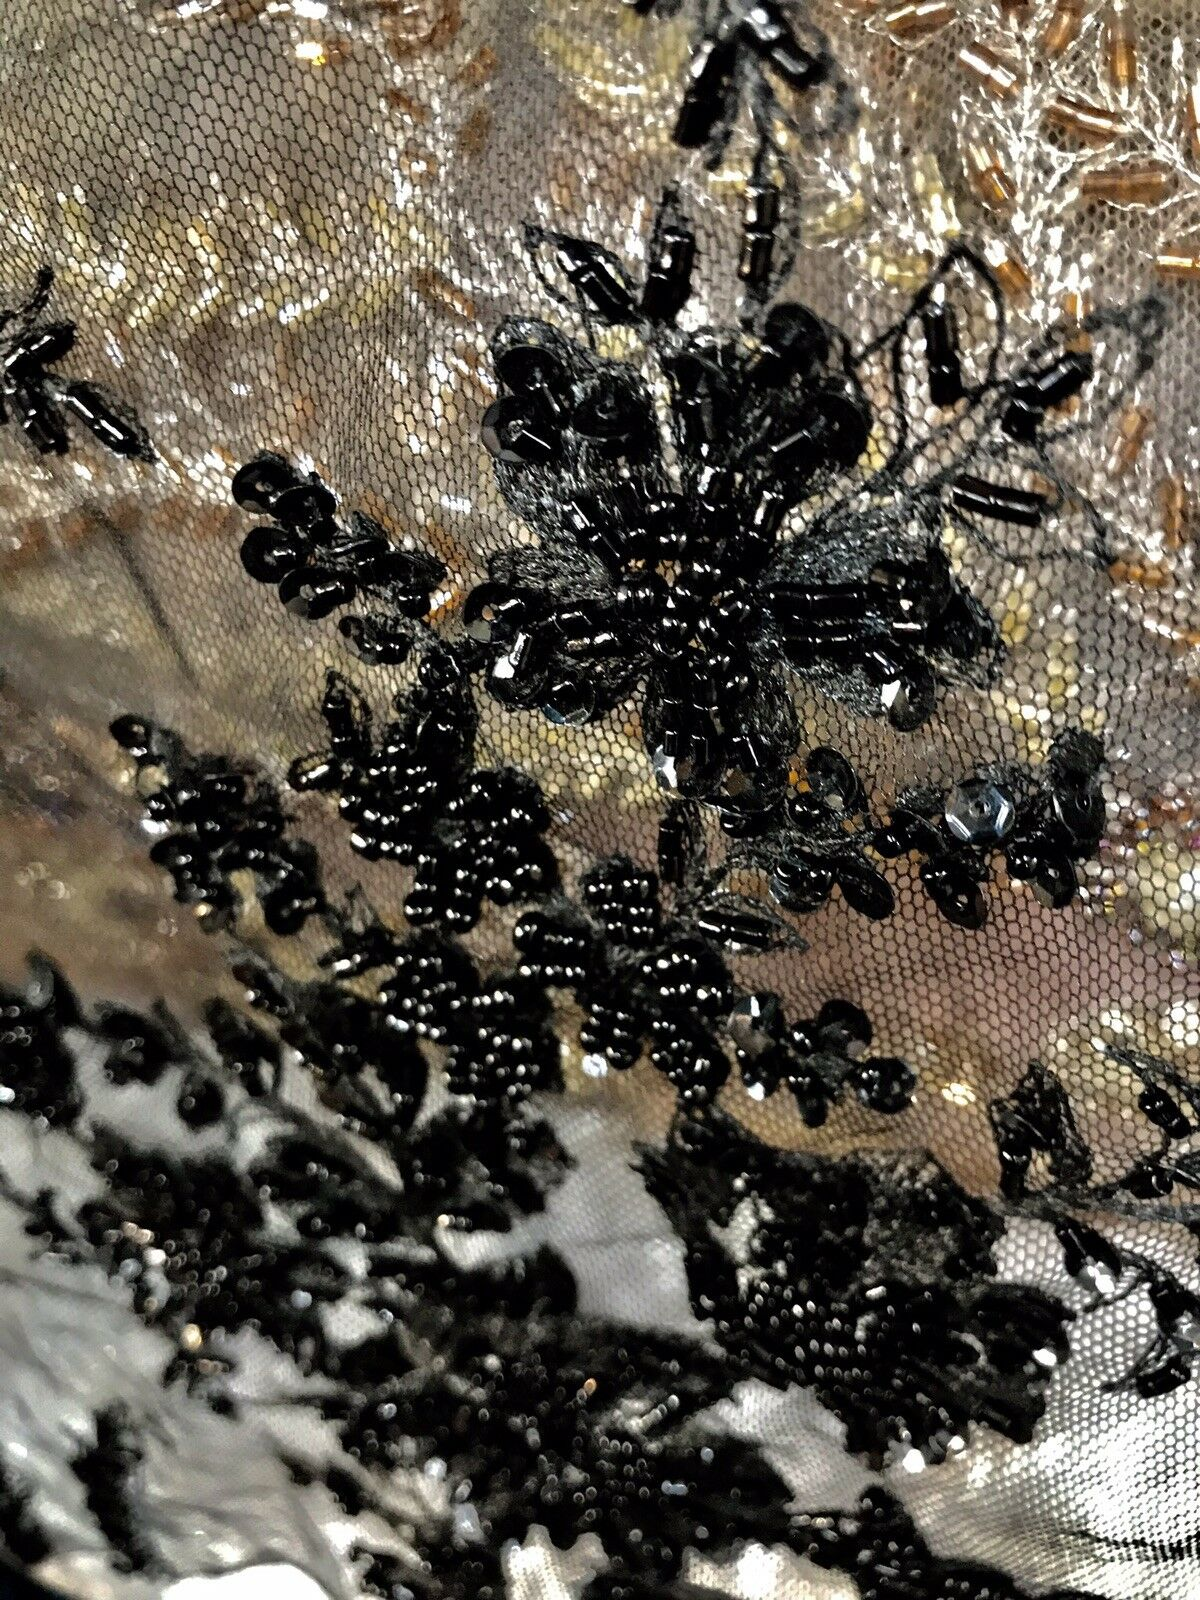 Beaded Black Pearl Scalloped Edges Wedding Lace Mesh Black Floral Fabric